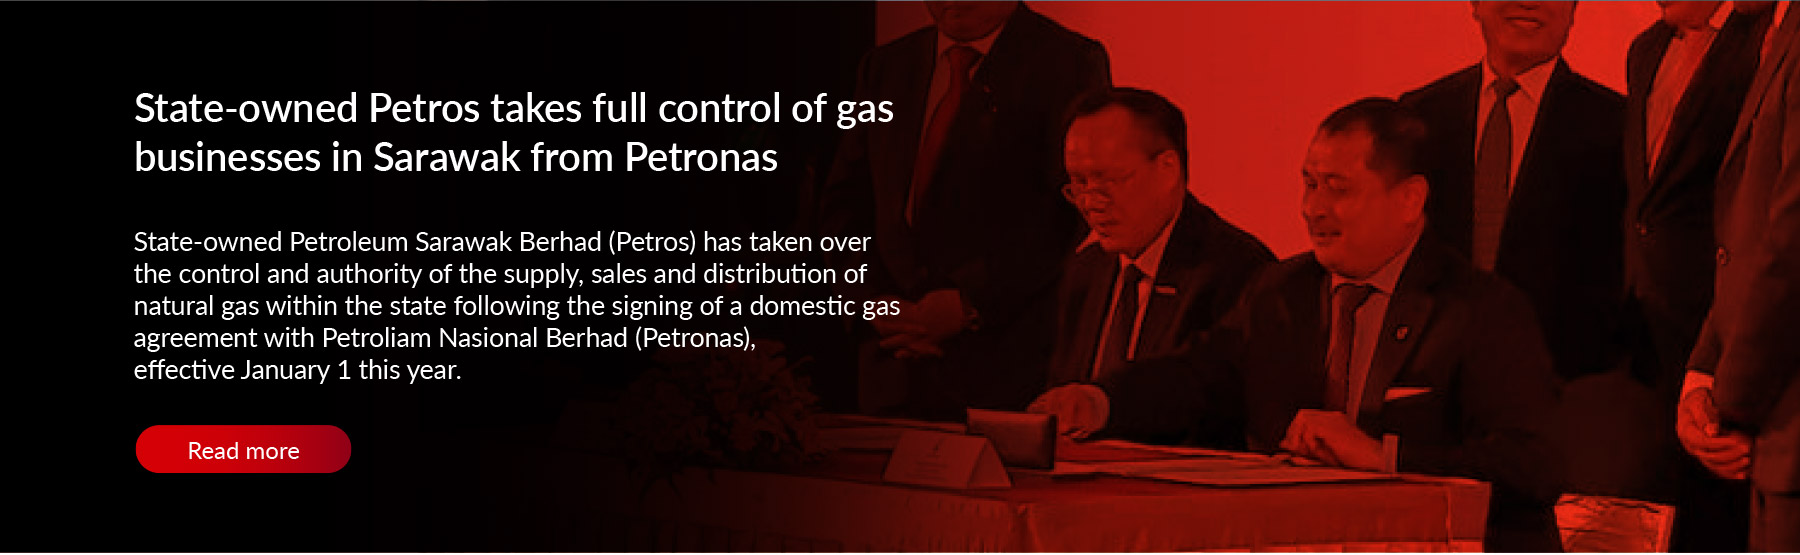 State-owned Petros takes full control of gas businesses in Sarawak from Petronas